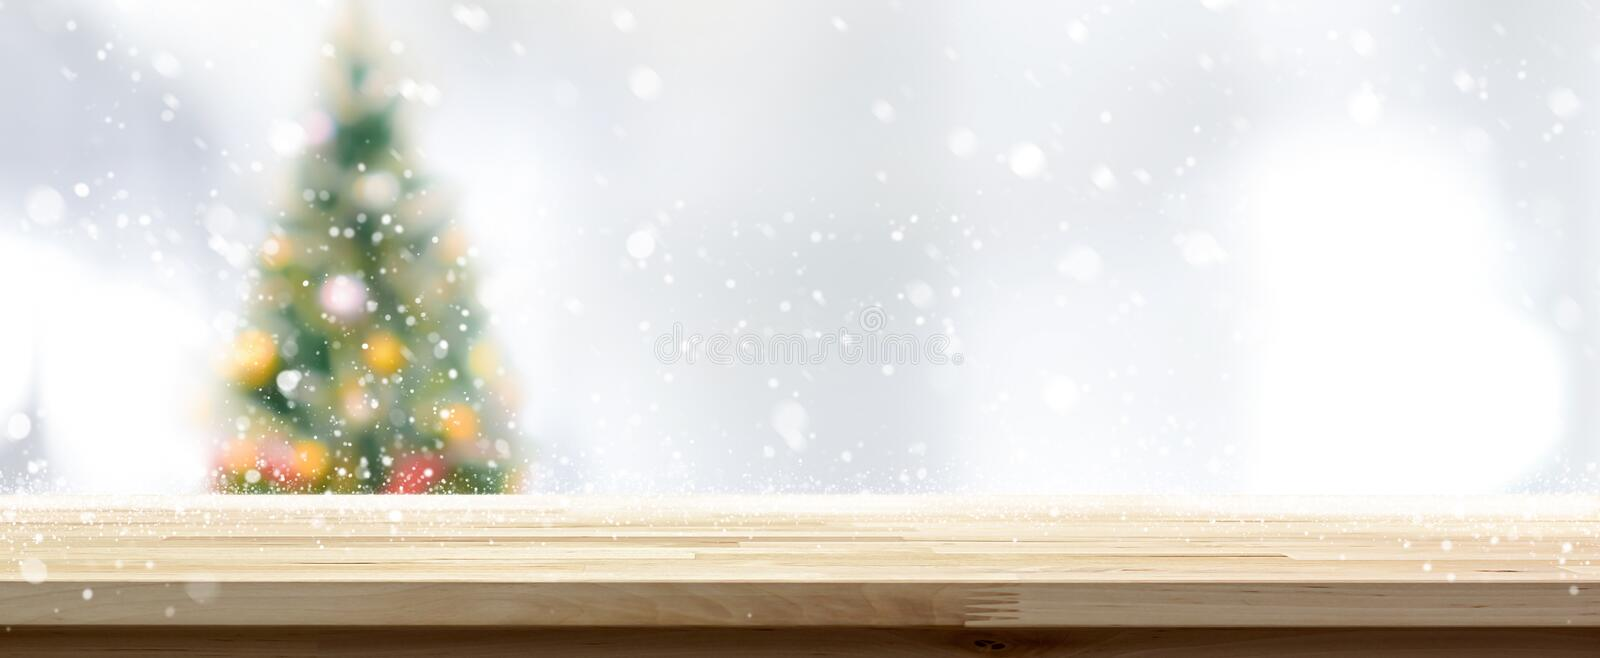 Download Wood Table Top On Blur Christmas Tree Banner Background Stock  Image   Image Of Creative